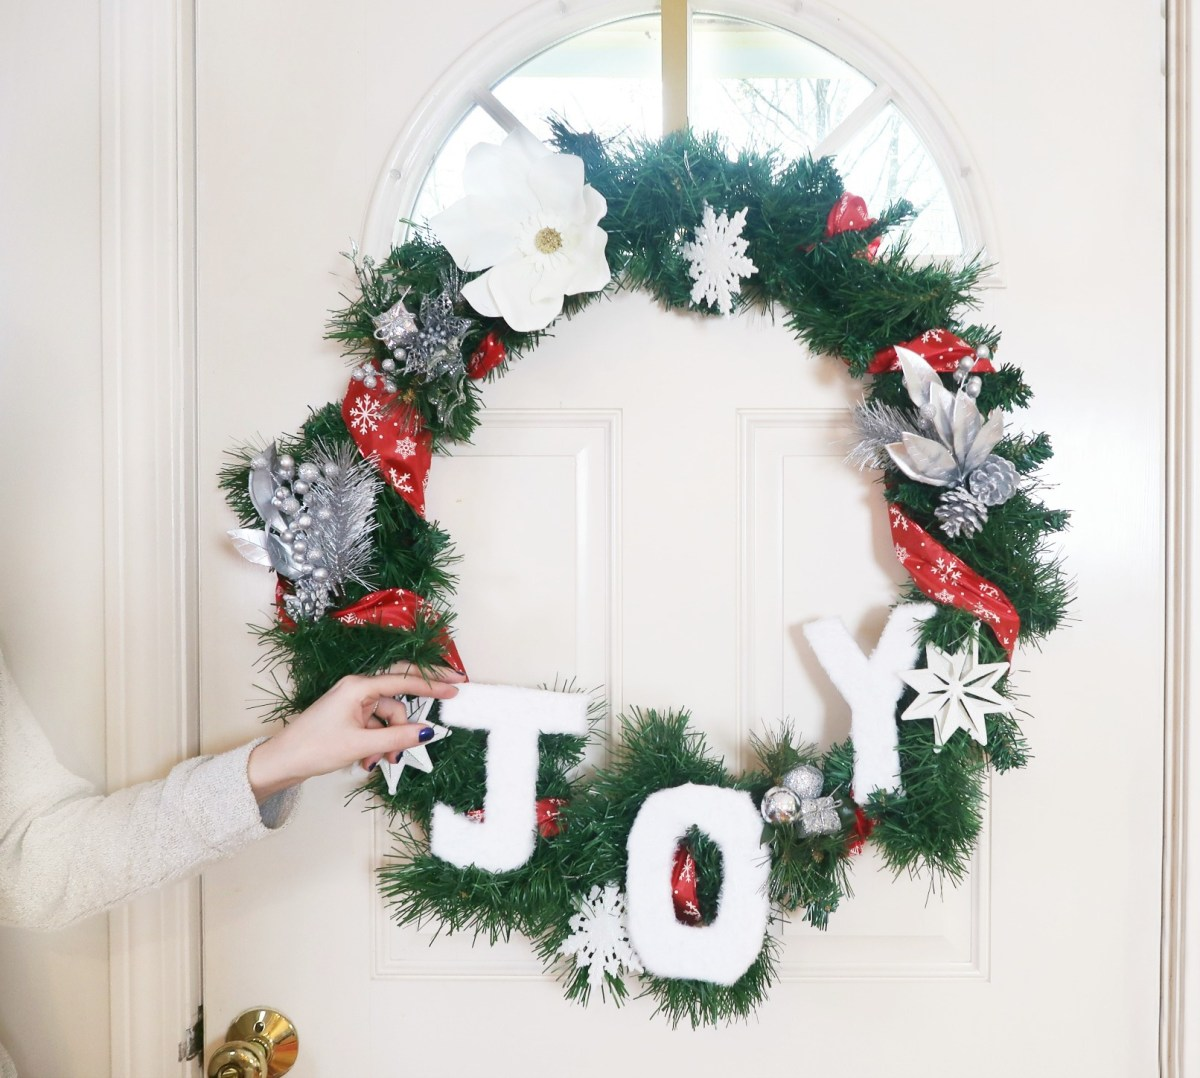 christmas is the only holiday i decorate for and even though im getting a little better every year my decorations are still pretty minimal when it comes - How To Make A Christmas